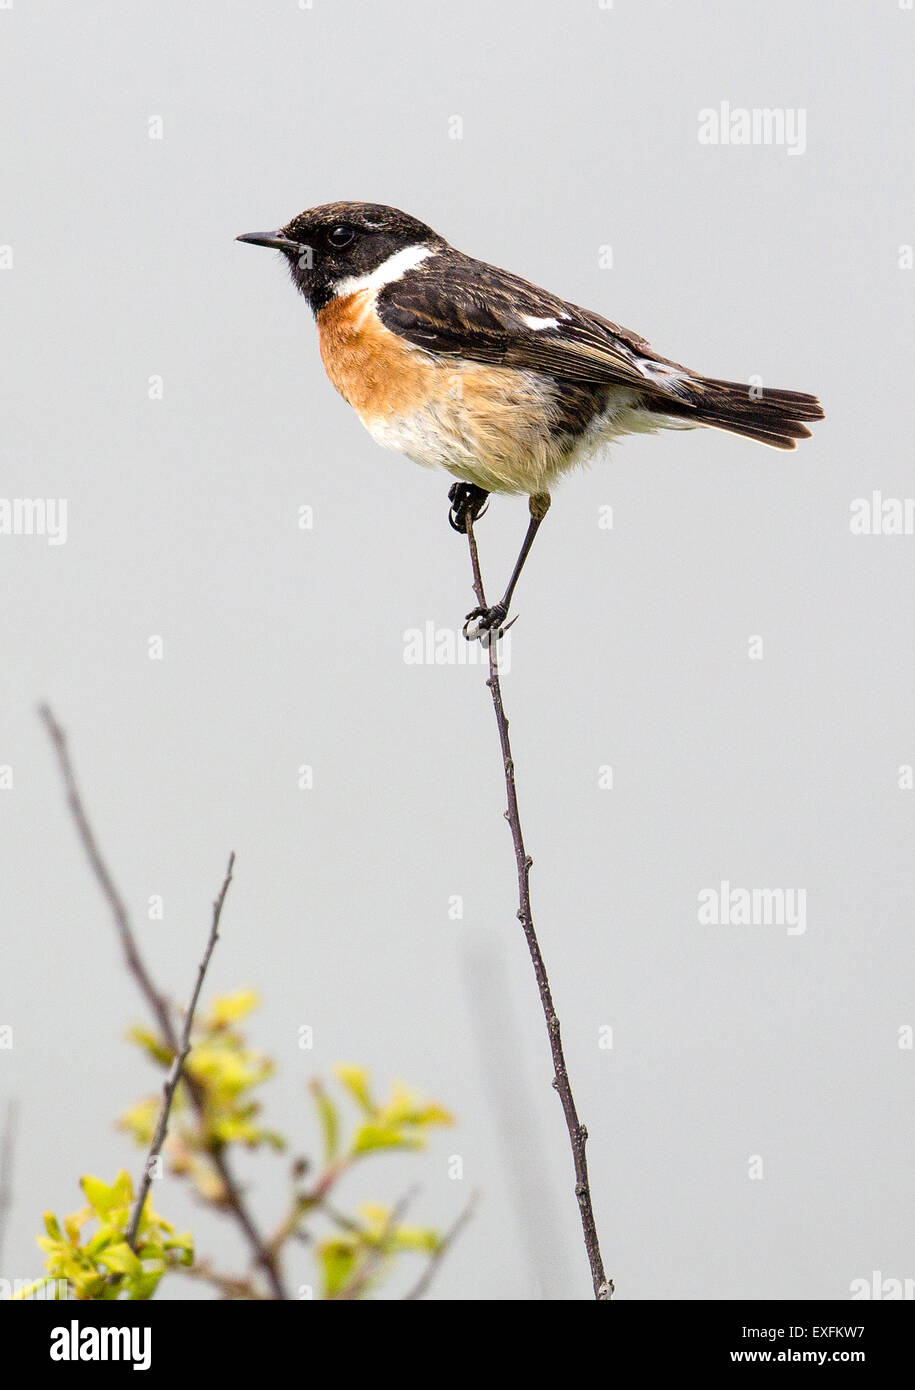 Male European Stonechat Saxicola rubicola perched on a thin blackthorn twig Gower peninsula South Wales UK Stock Photo